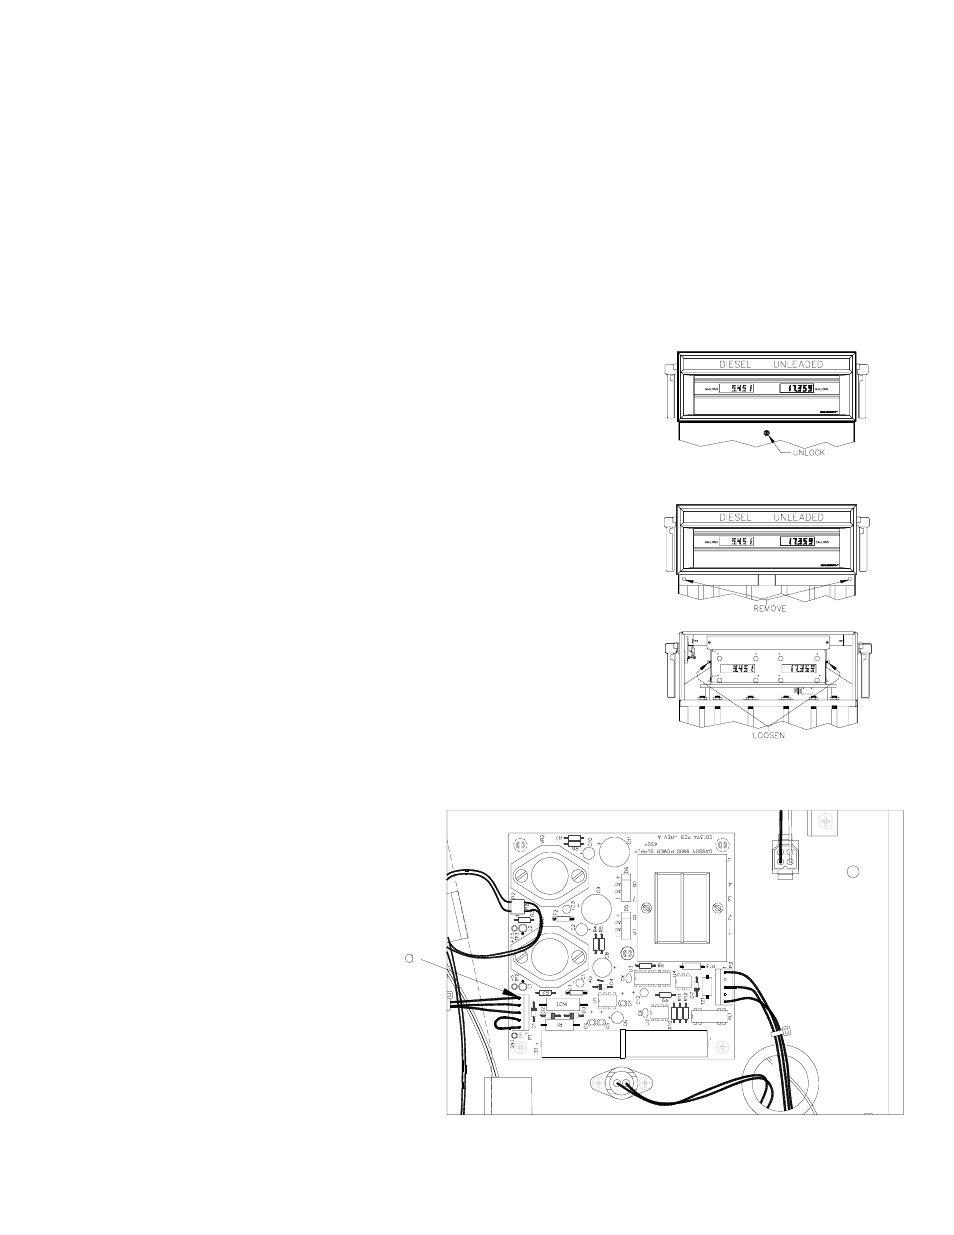 Gasboy 120vac Heater Kit User Manual 3 Pages Also For 240vac Step 1 Turn Off Power At Circuit Breaker